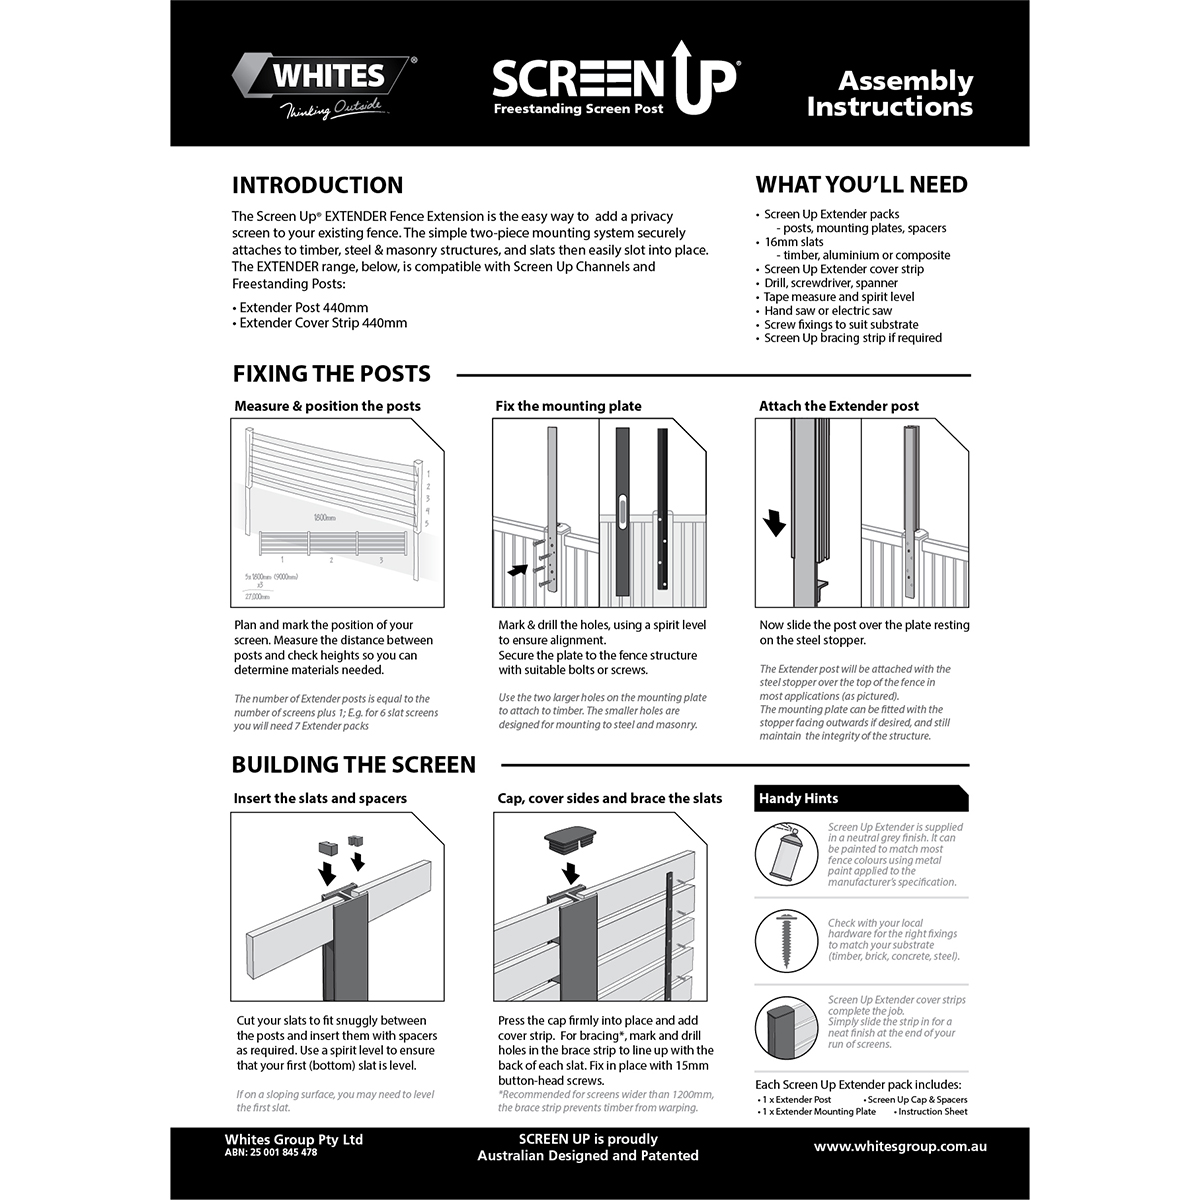 16907 Screen Up Extender instructions